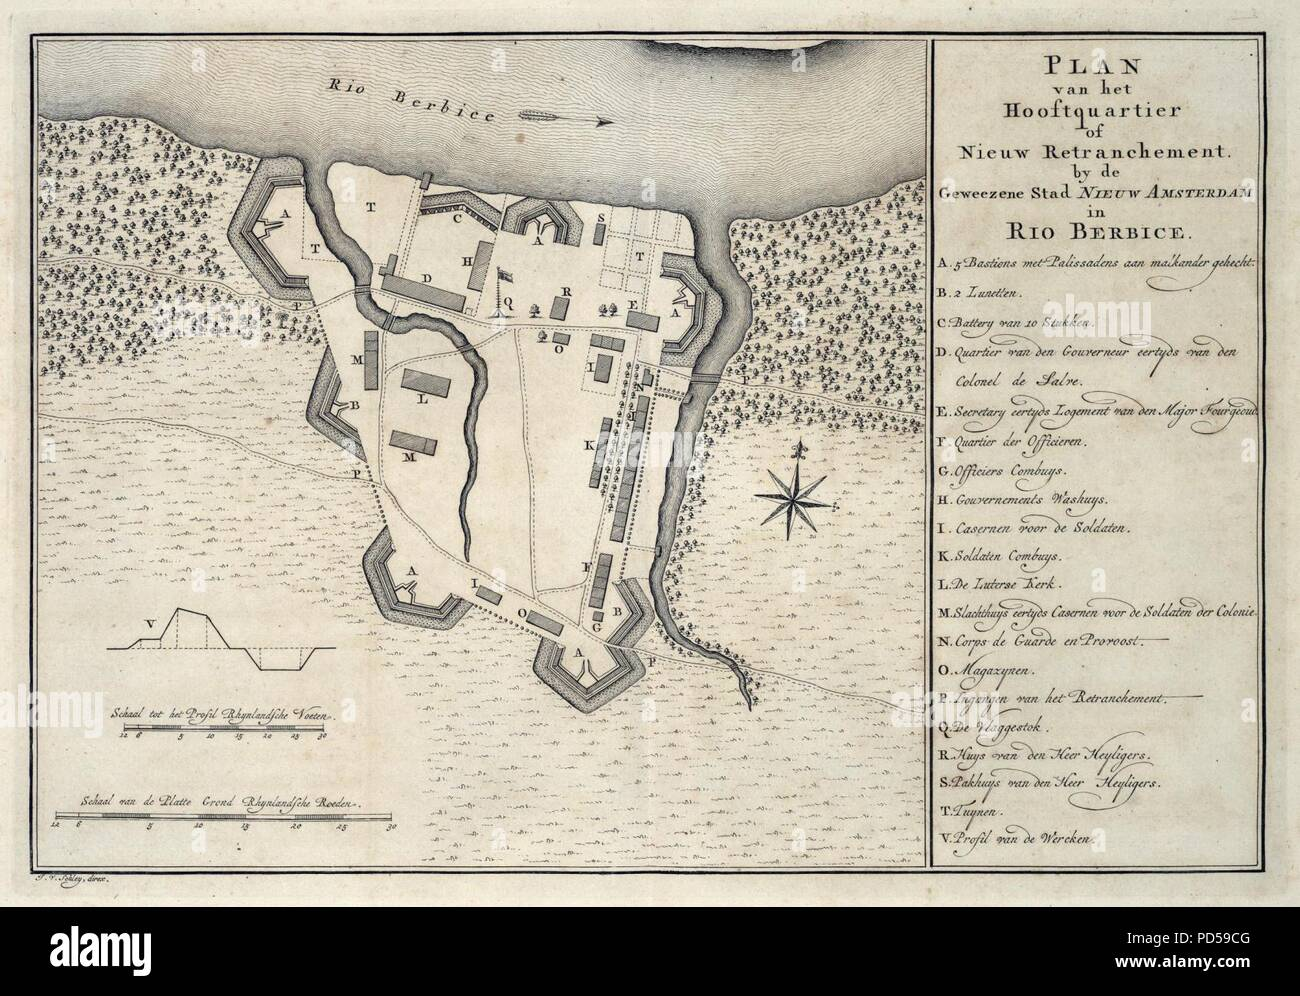 Map of a new fort near Nieuw Amsterdam, Berbice Stock Photo ... Map New Amsterdam on roosevelt family, amsterdam red-light section map, charleston map, peter minuit map, pequot war, province of new york, new baghdad map, anne hutchinson, new netherlands, dutch west india company, amsterdam ny map, philadelphia map, kiawah island on a map, fort orange map, dutch cape colony map, world trade towers map, colonial america, new sweden, samuel de champlain, king philip's war, livingston manor map, castello plan map, new suez canal map, amsterdam sights map, dominion of new england, peter minuit, new england, treaty of paris 1783 on map, john peter zenger, new austin map, castello plan, chimney rock on a map, new netherland, peter stuyvesant,